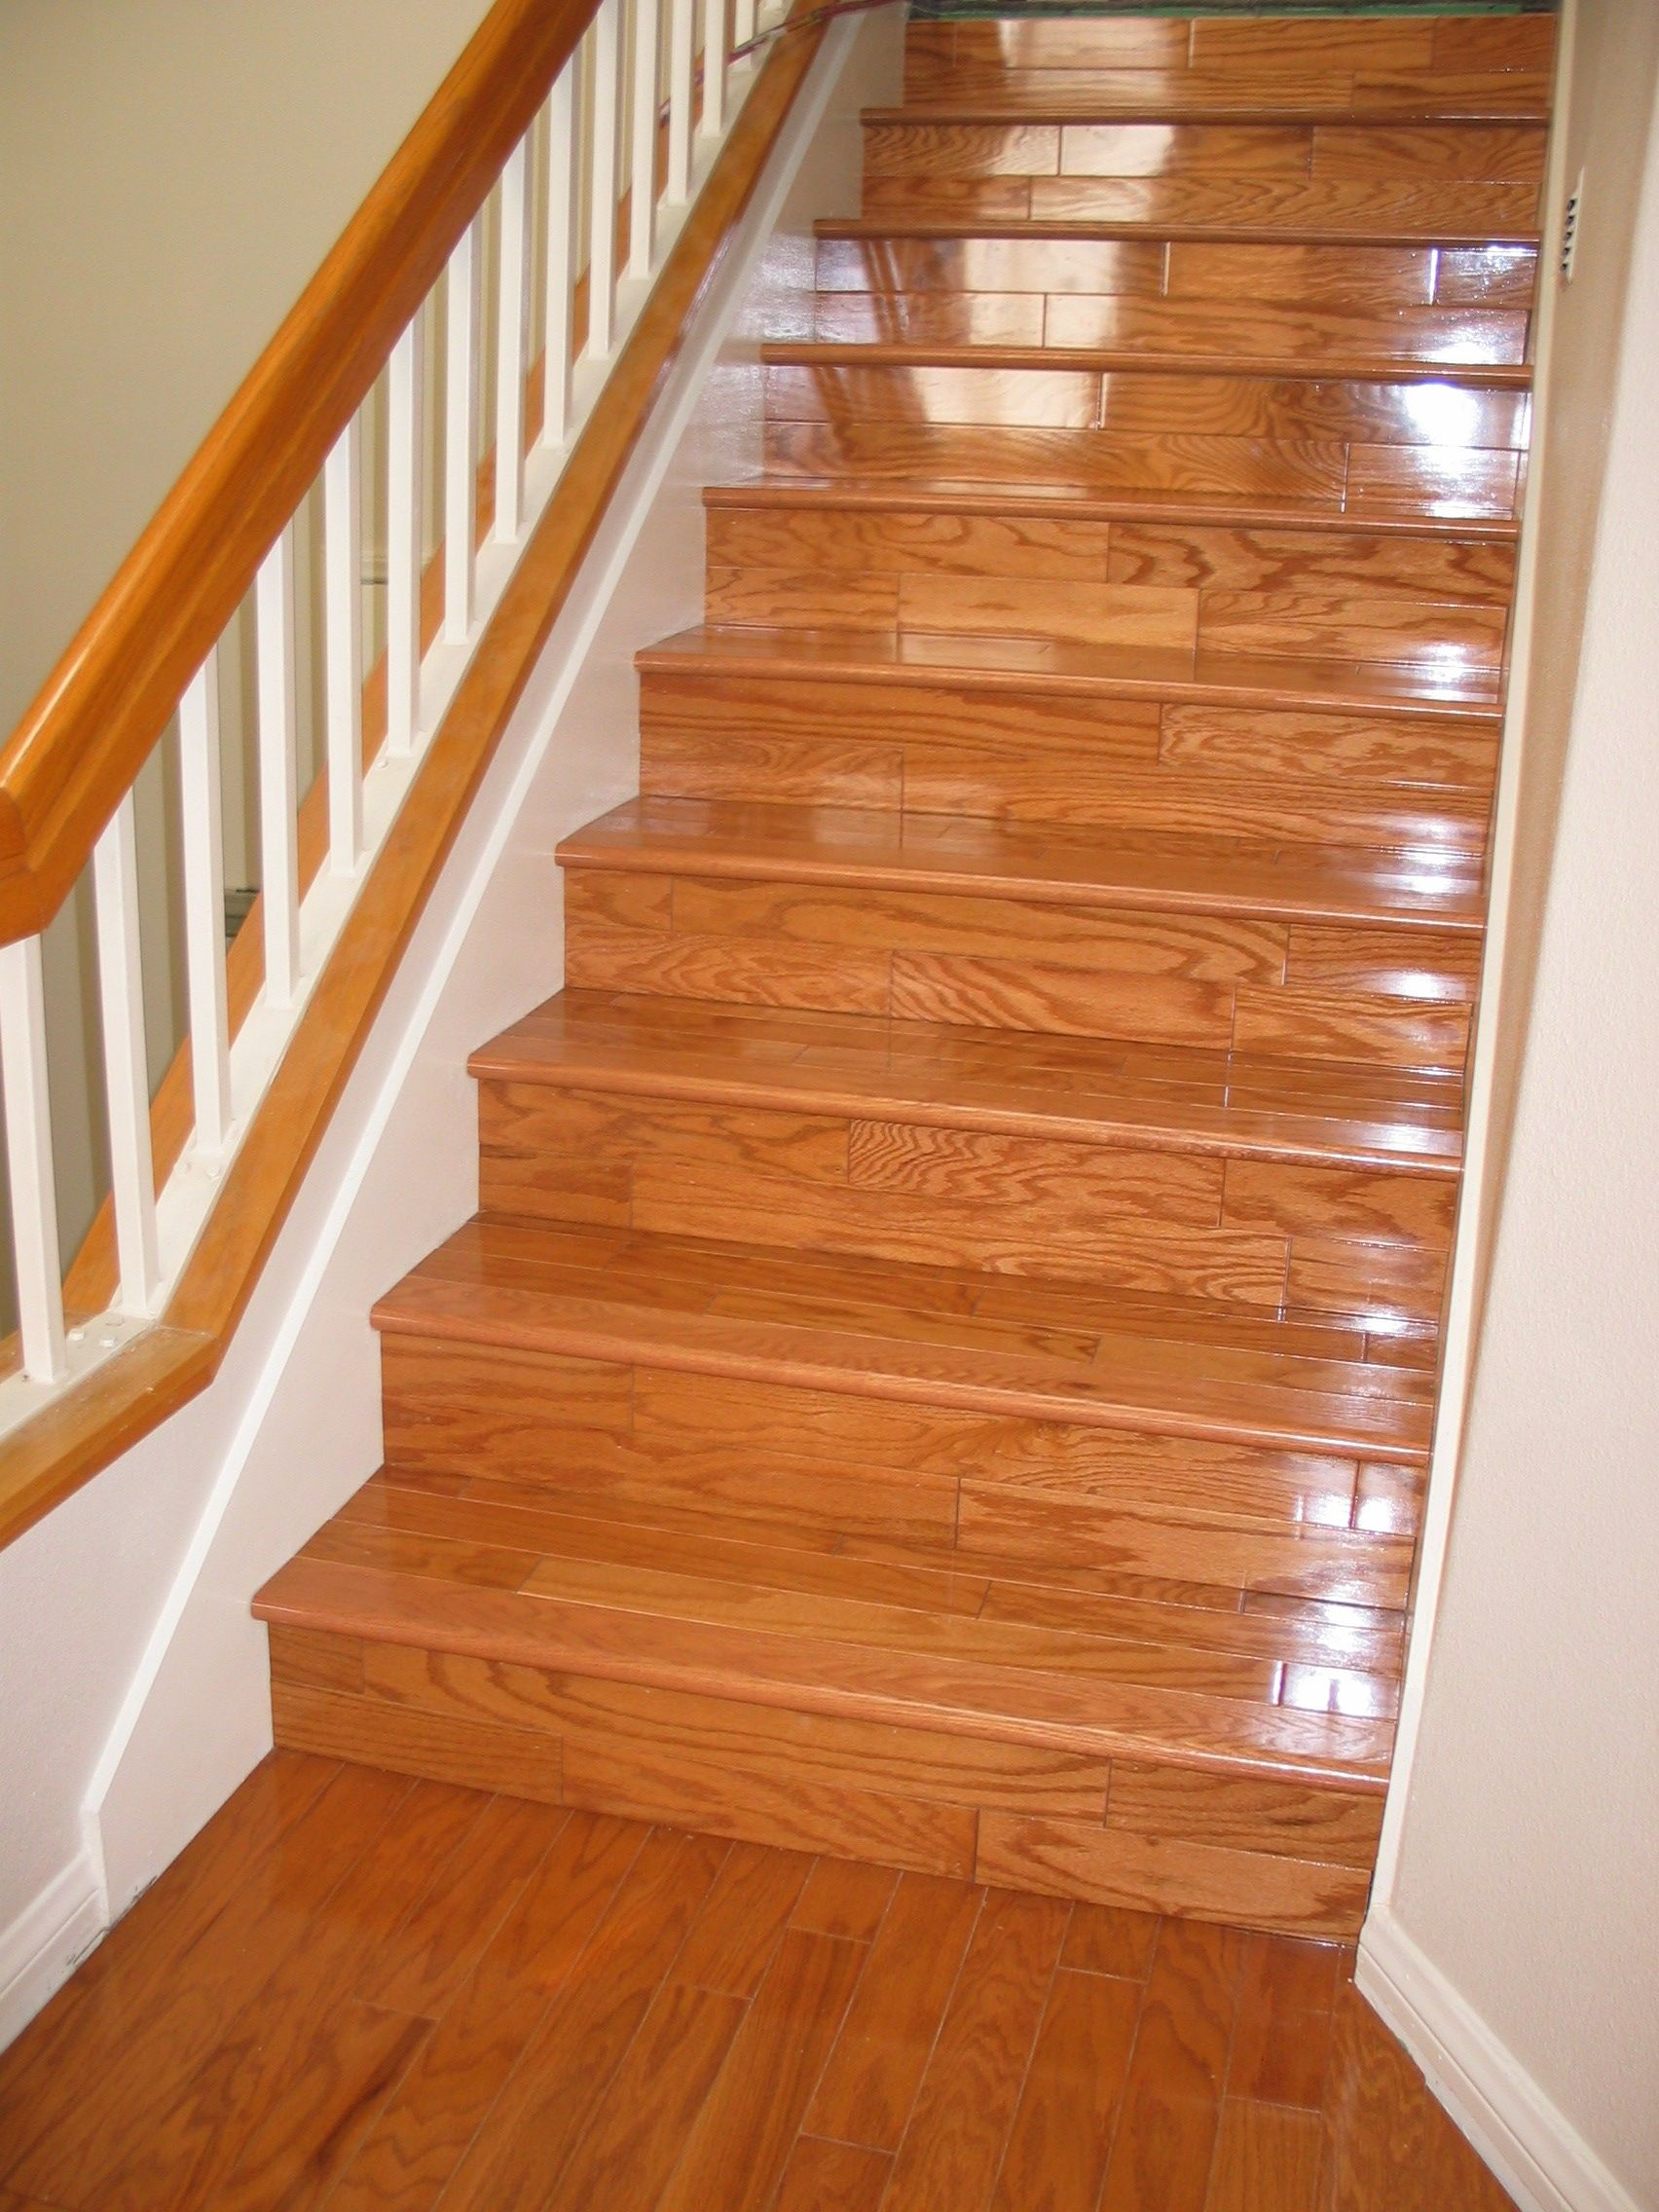 Best Layout Of Hardwood On Staircase With Landing Rich Johnson Flooring Insta… Laminate Flooring 400 x 300